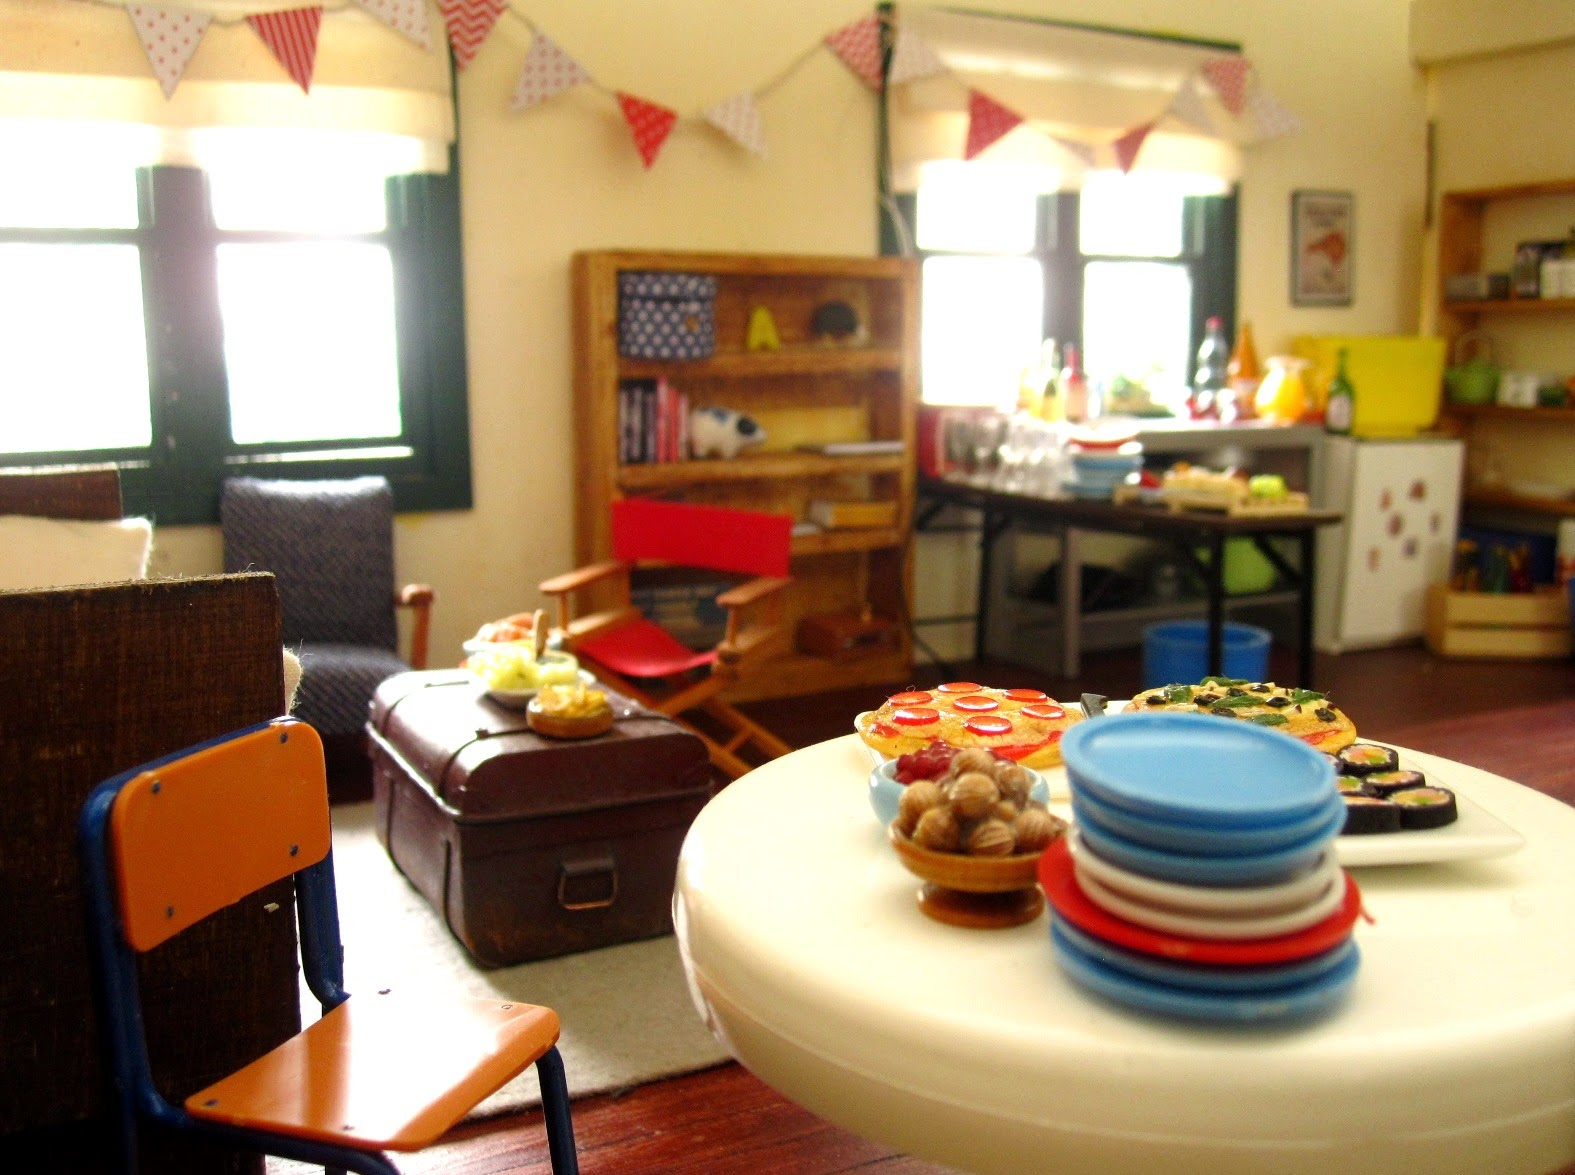 A miniature dolls' house living room, set up for a party with food, seating and plates arranged.